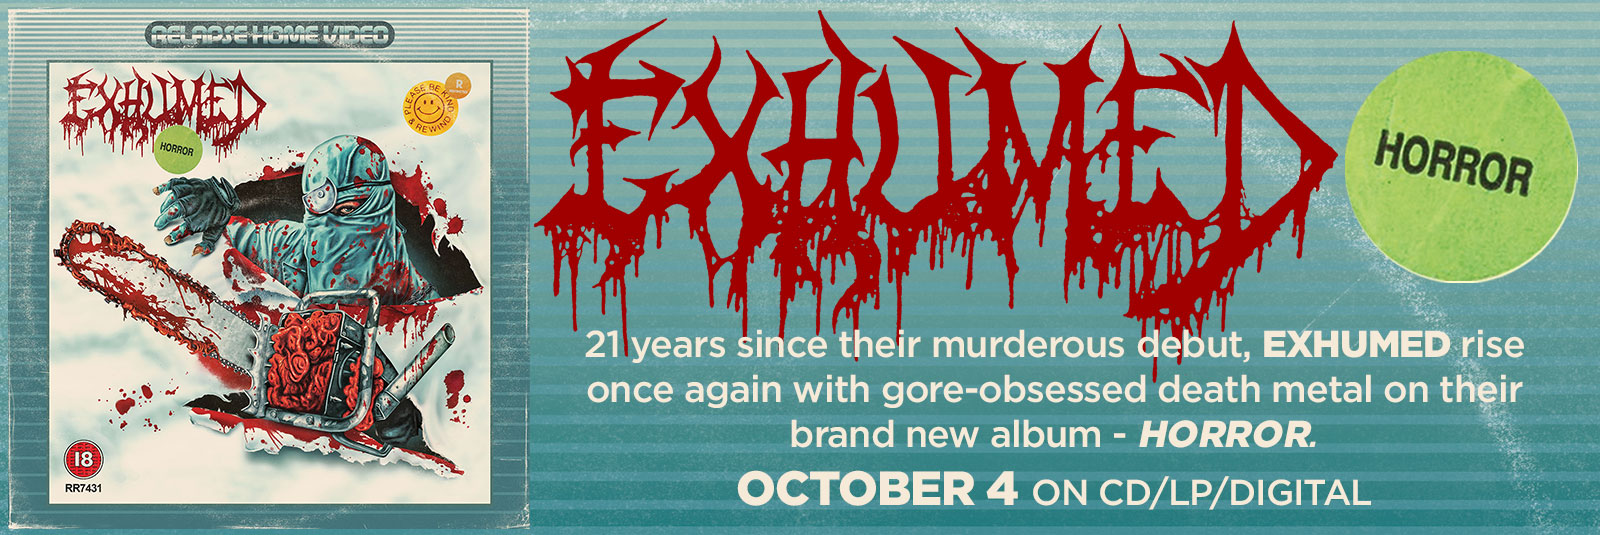 exhumed-horror-death-metal-grindcore-relapse-october-4